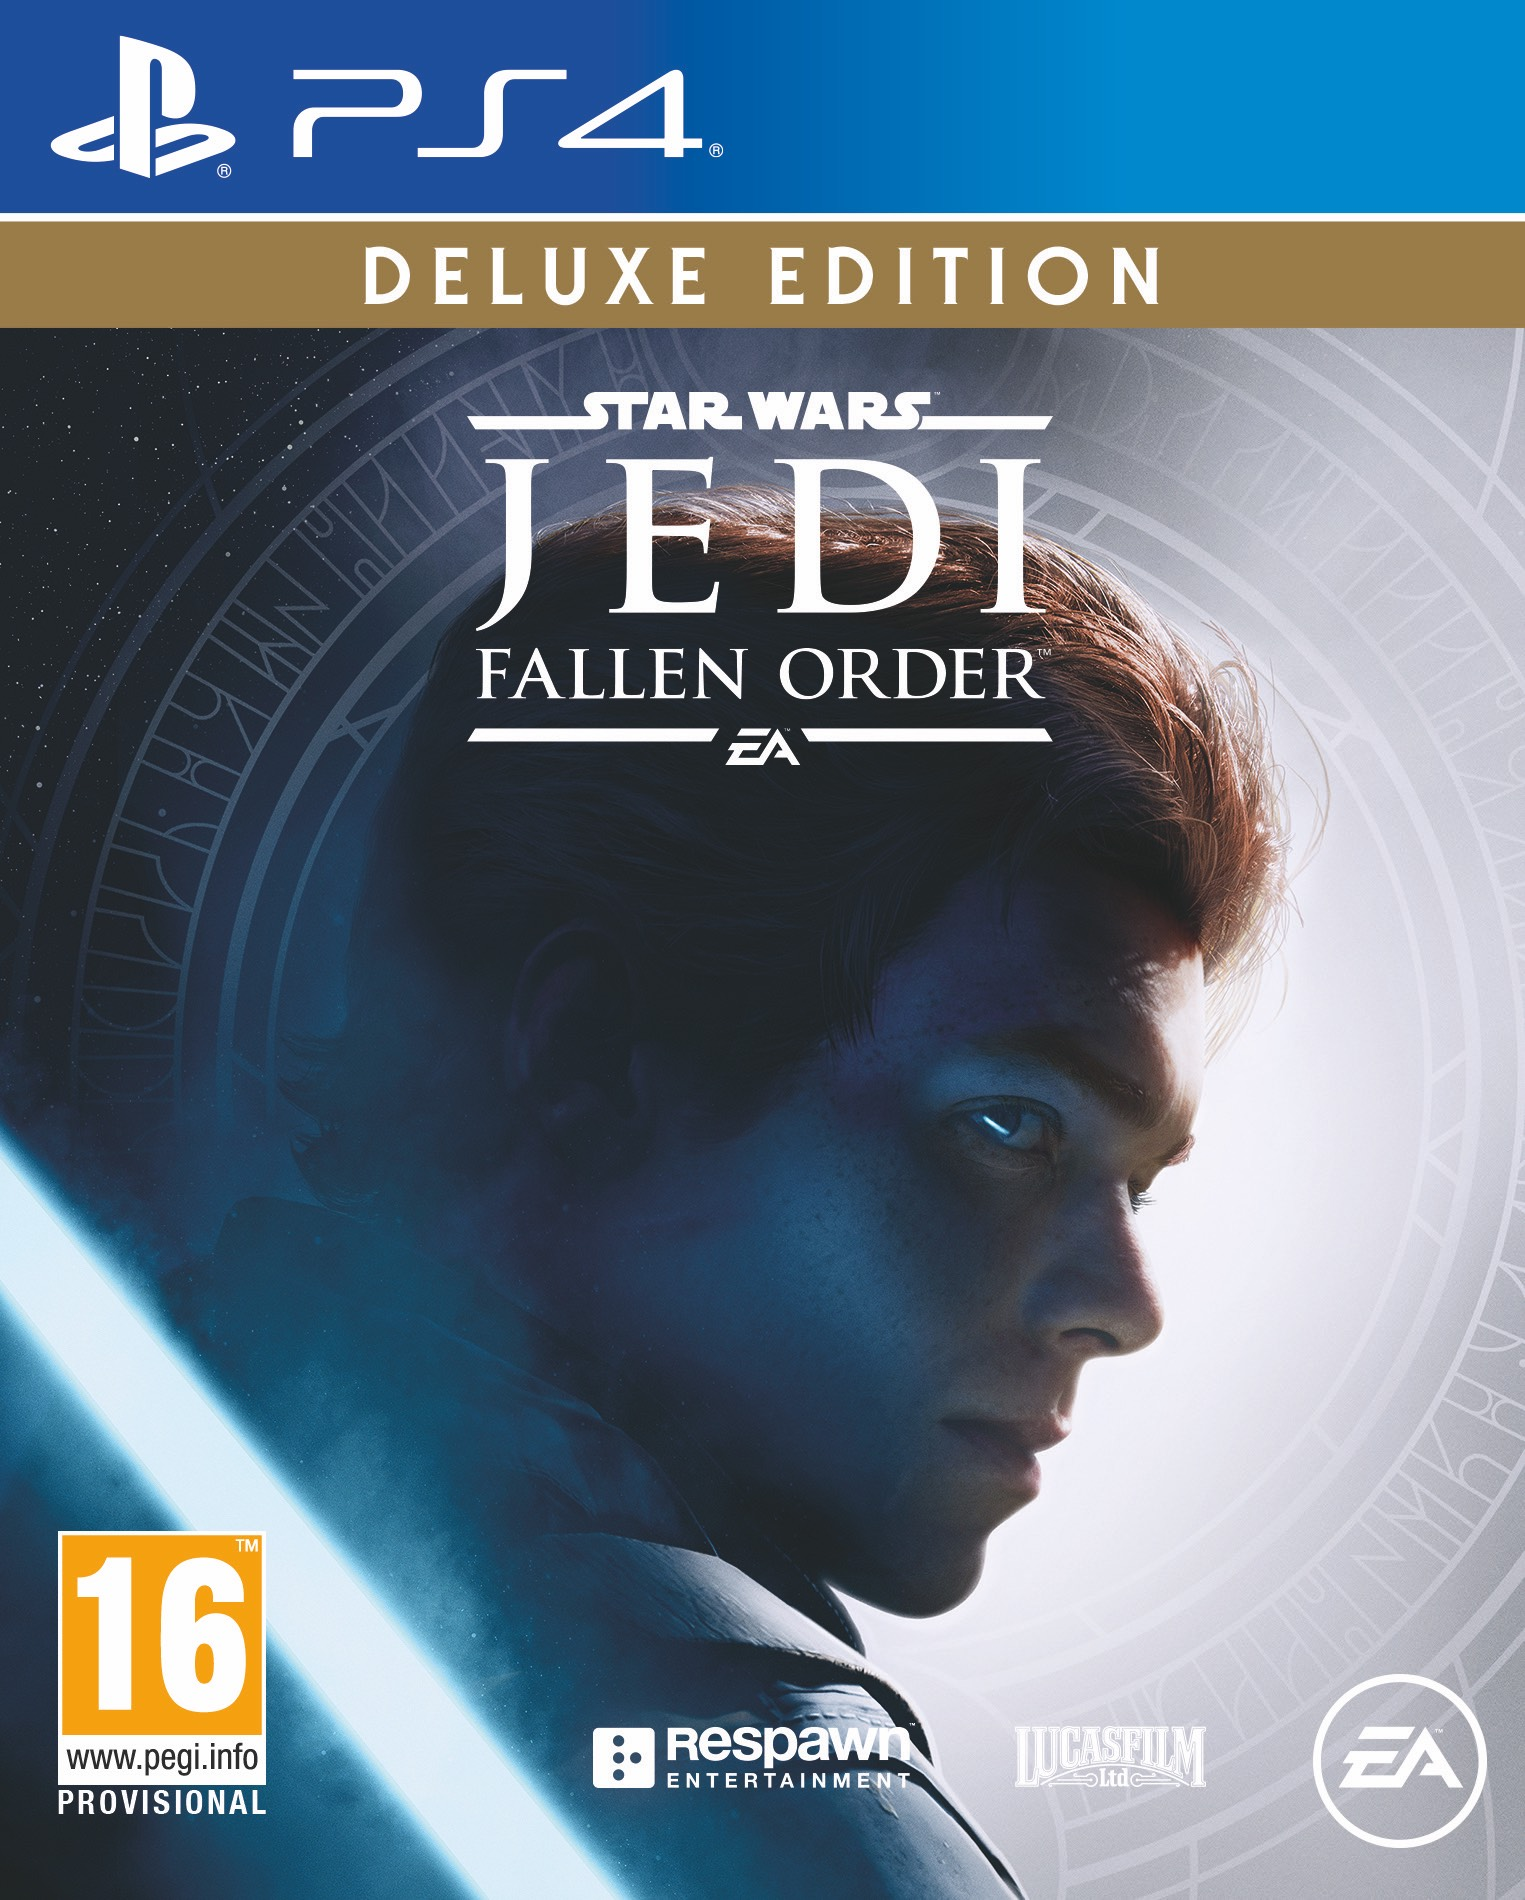 Star Wars Jedi: Fallen Order: svelate le box art ufficiali